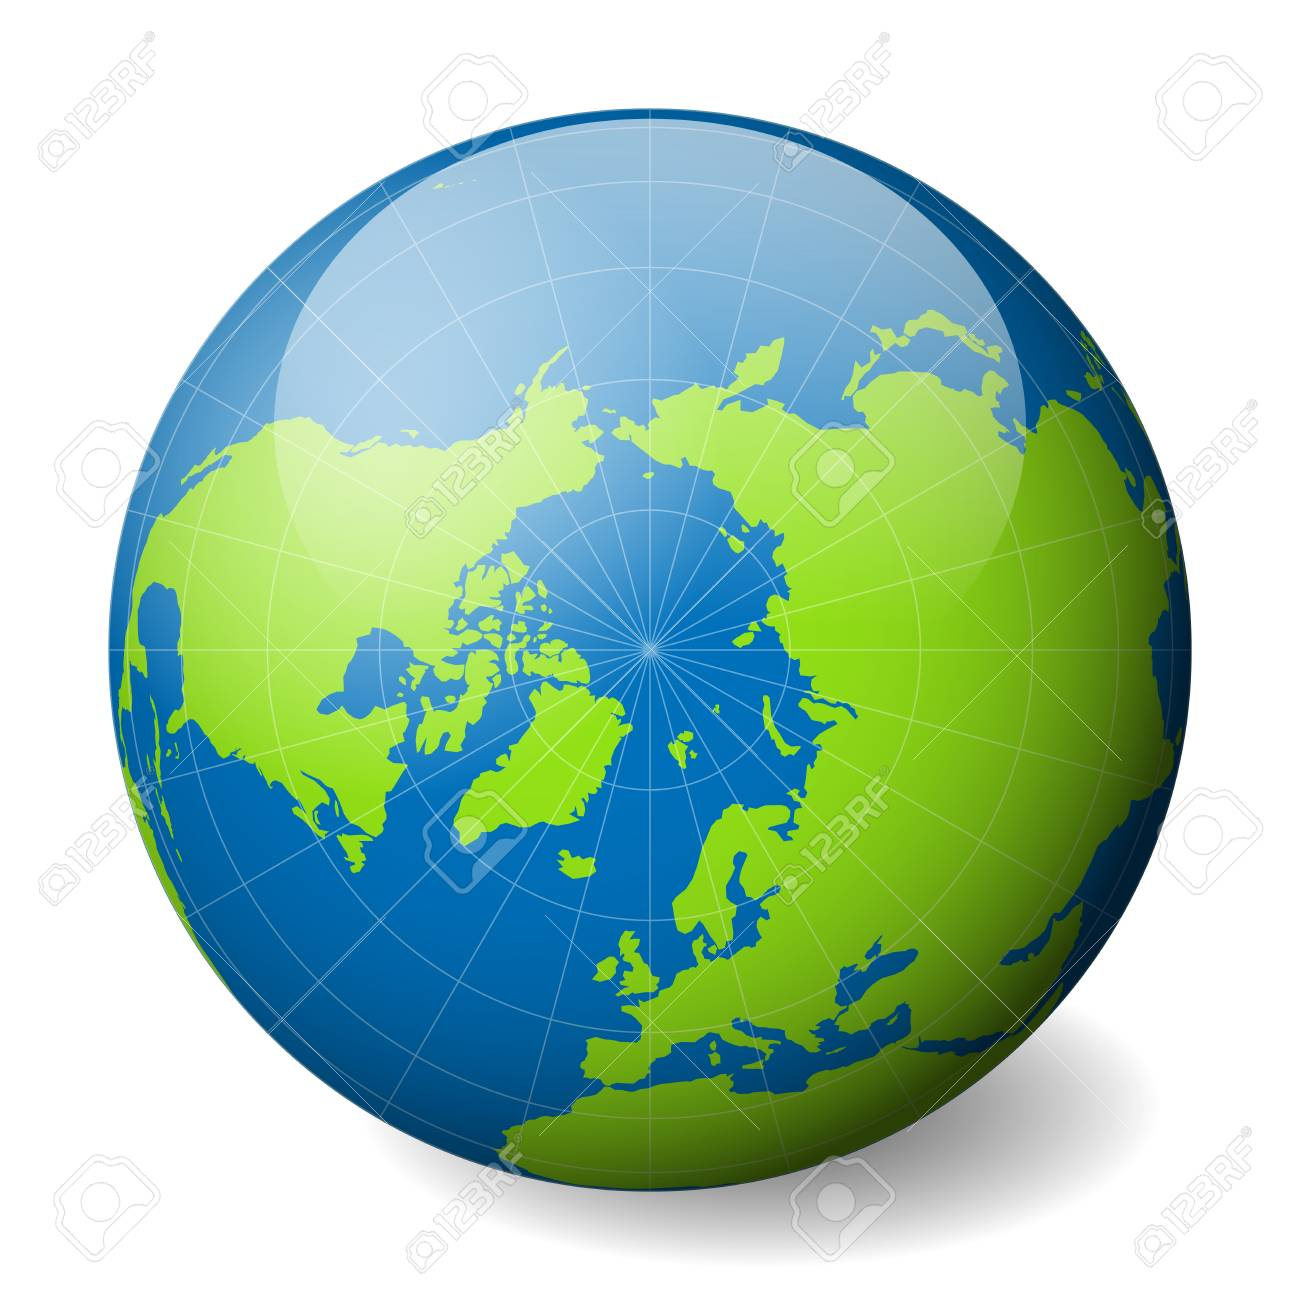 Earth Globe With Green World Map And Blue Seas And Oceans Focused